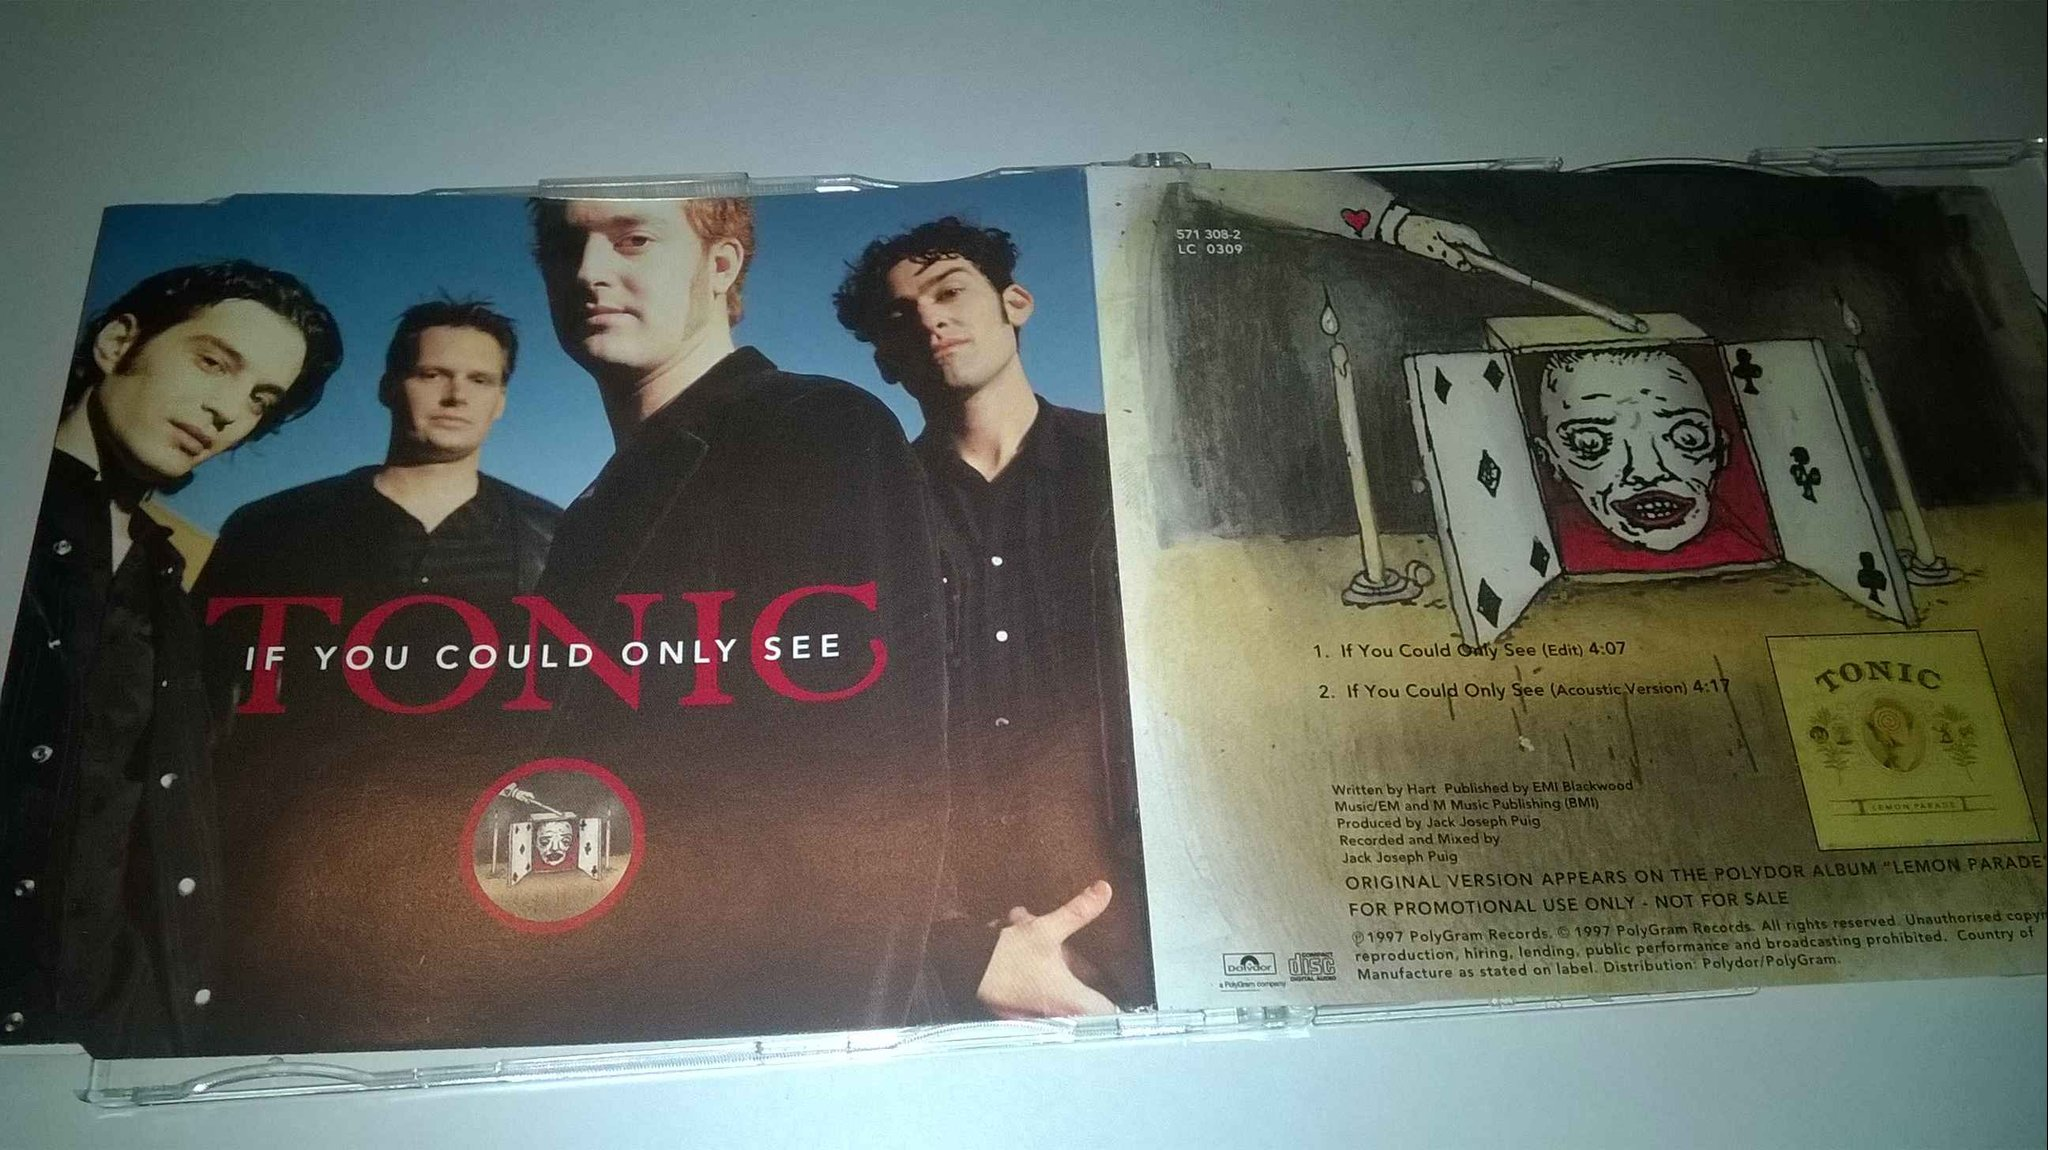 Tonic - If You Could Only See, CD, Single, Promo